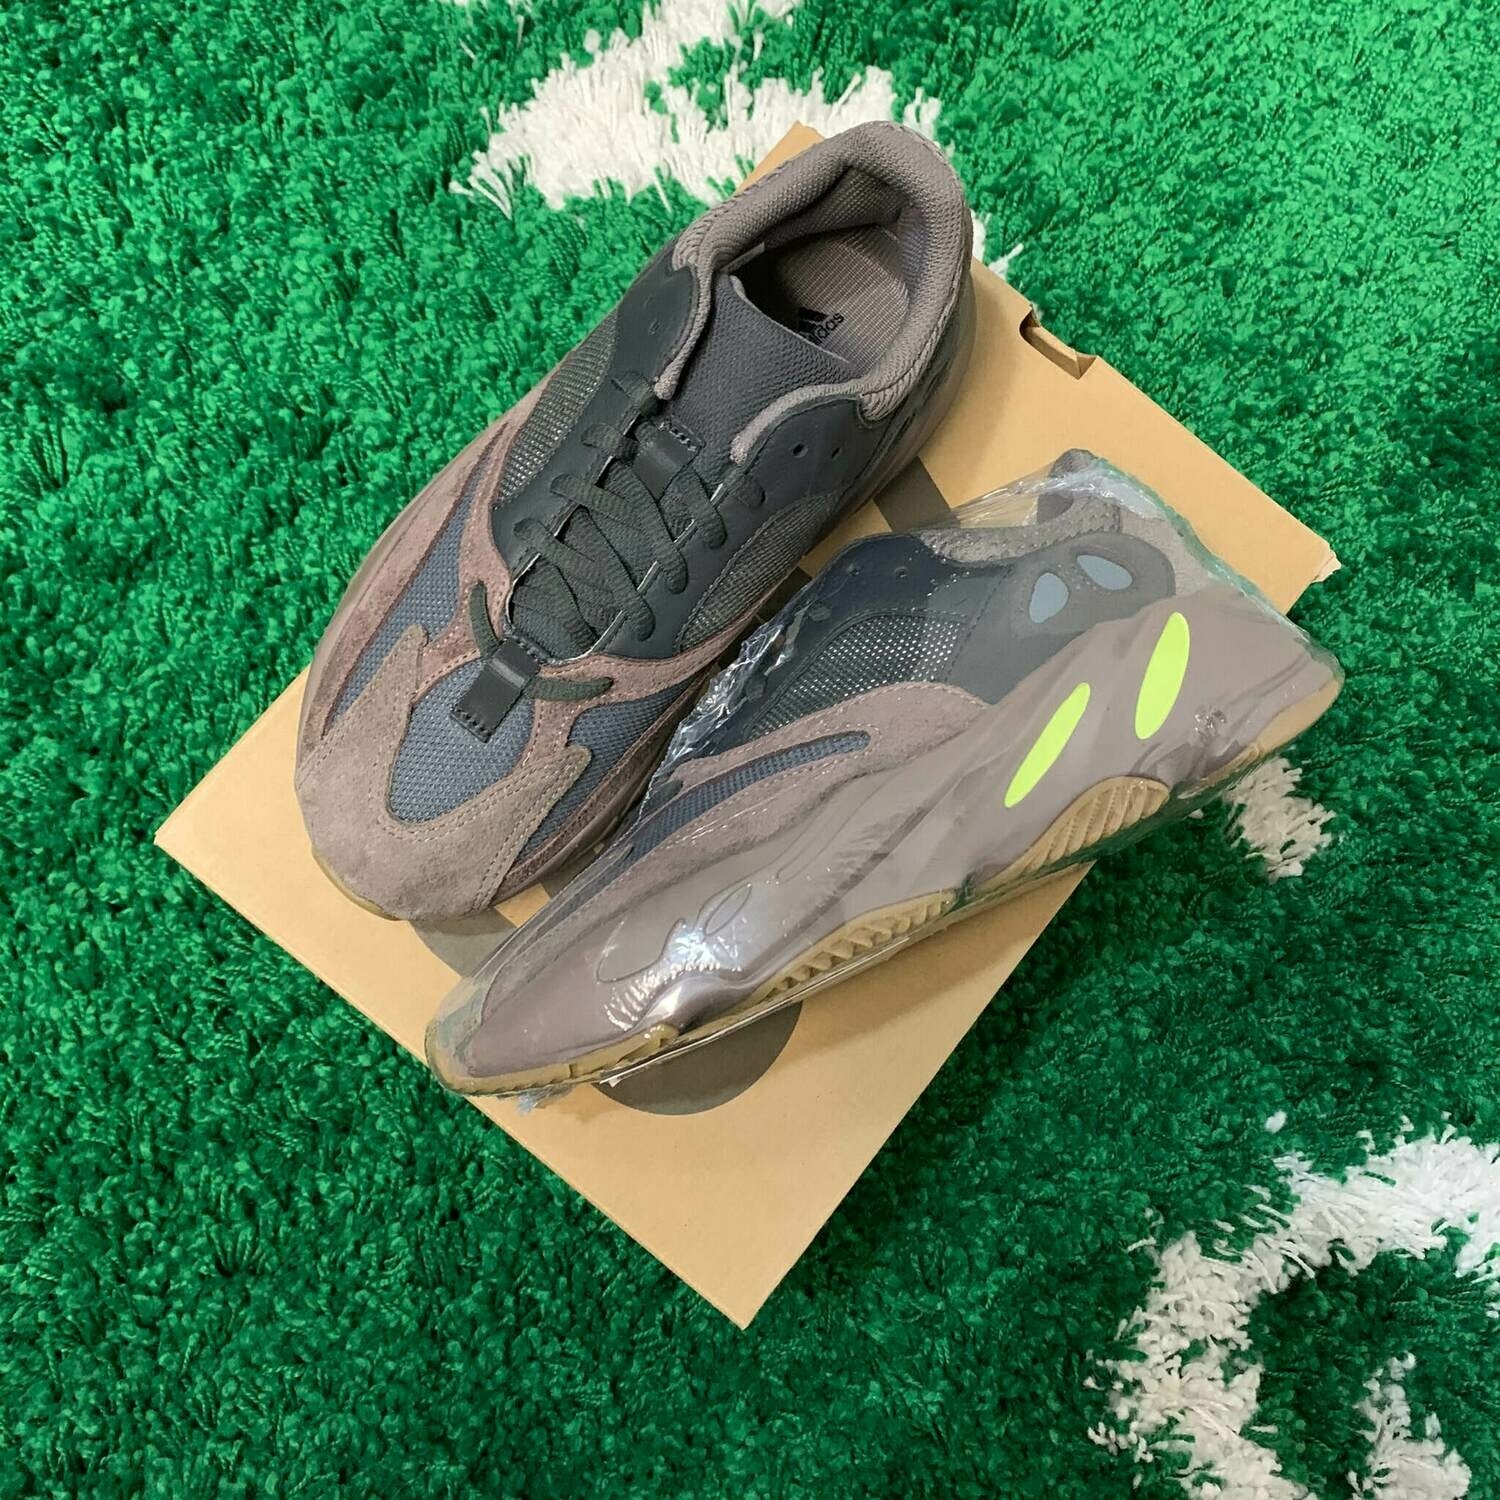 Adidas Yeezy Boost 700 Mauve Size 7.5